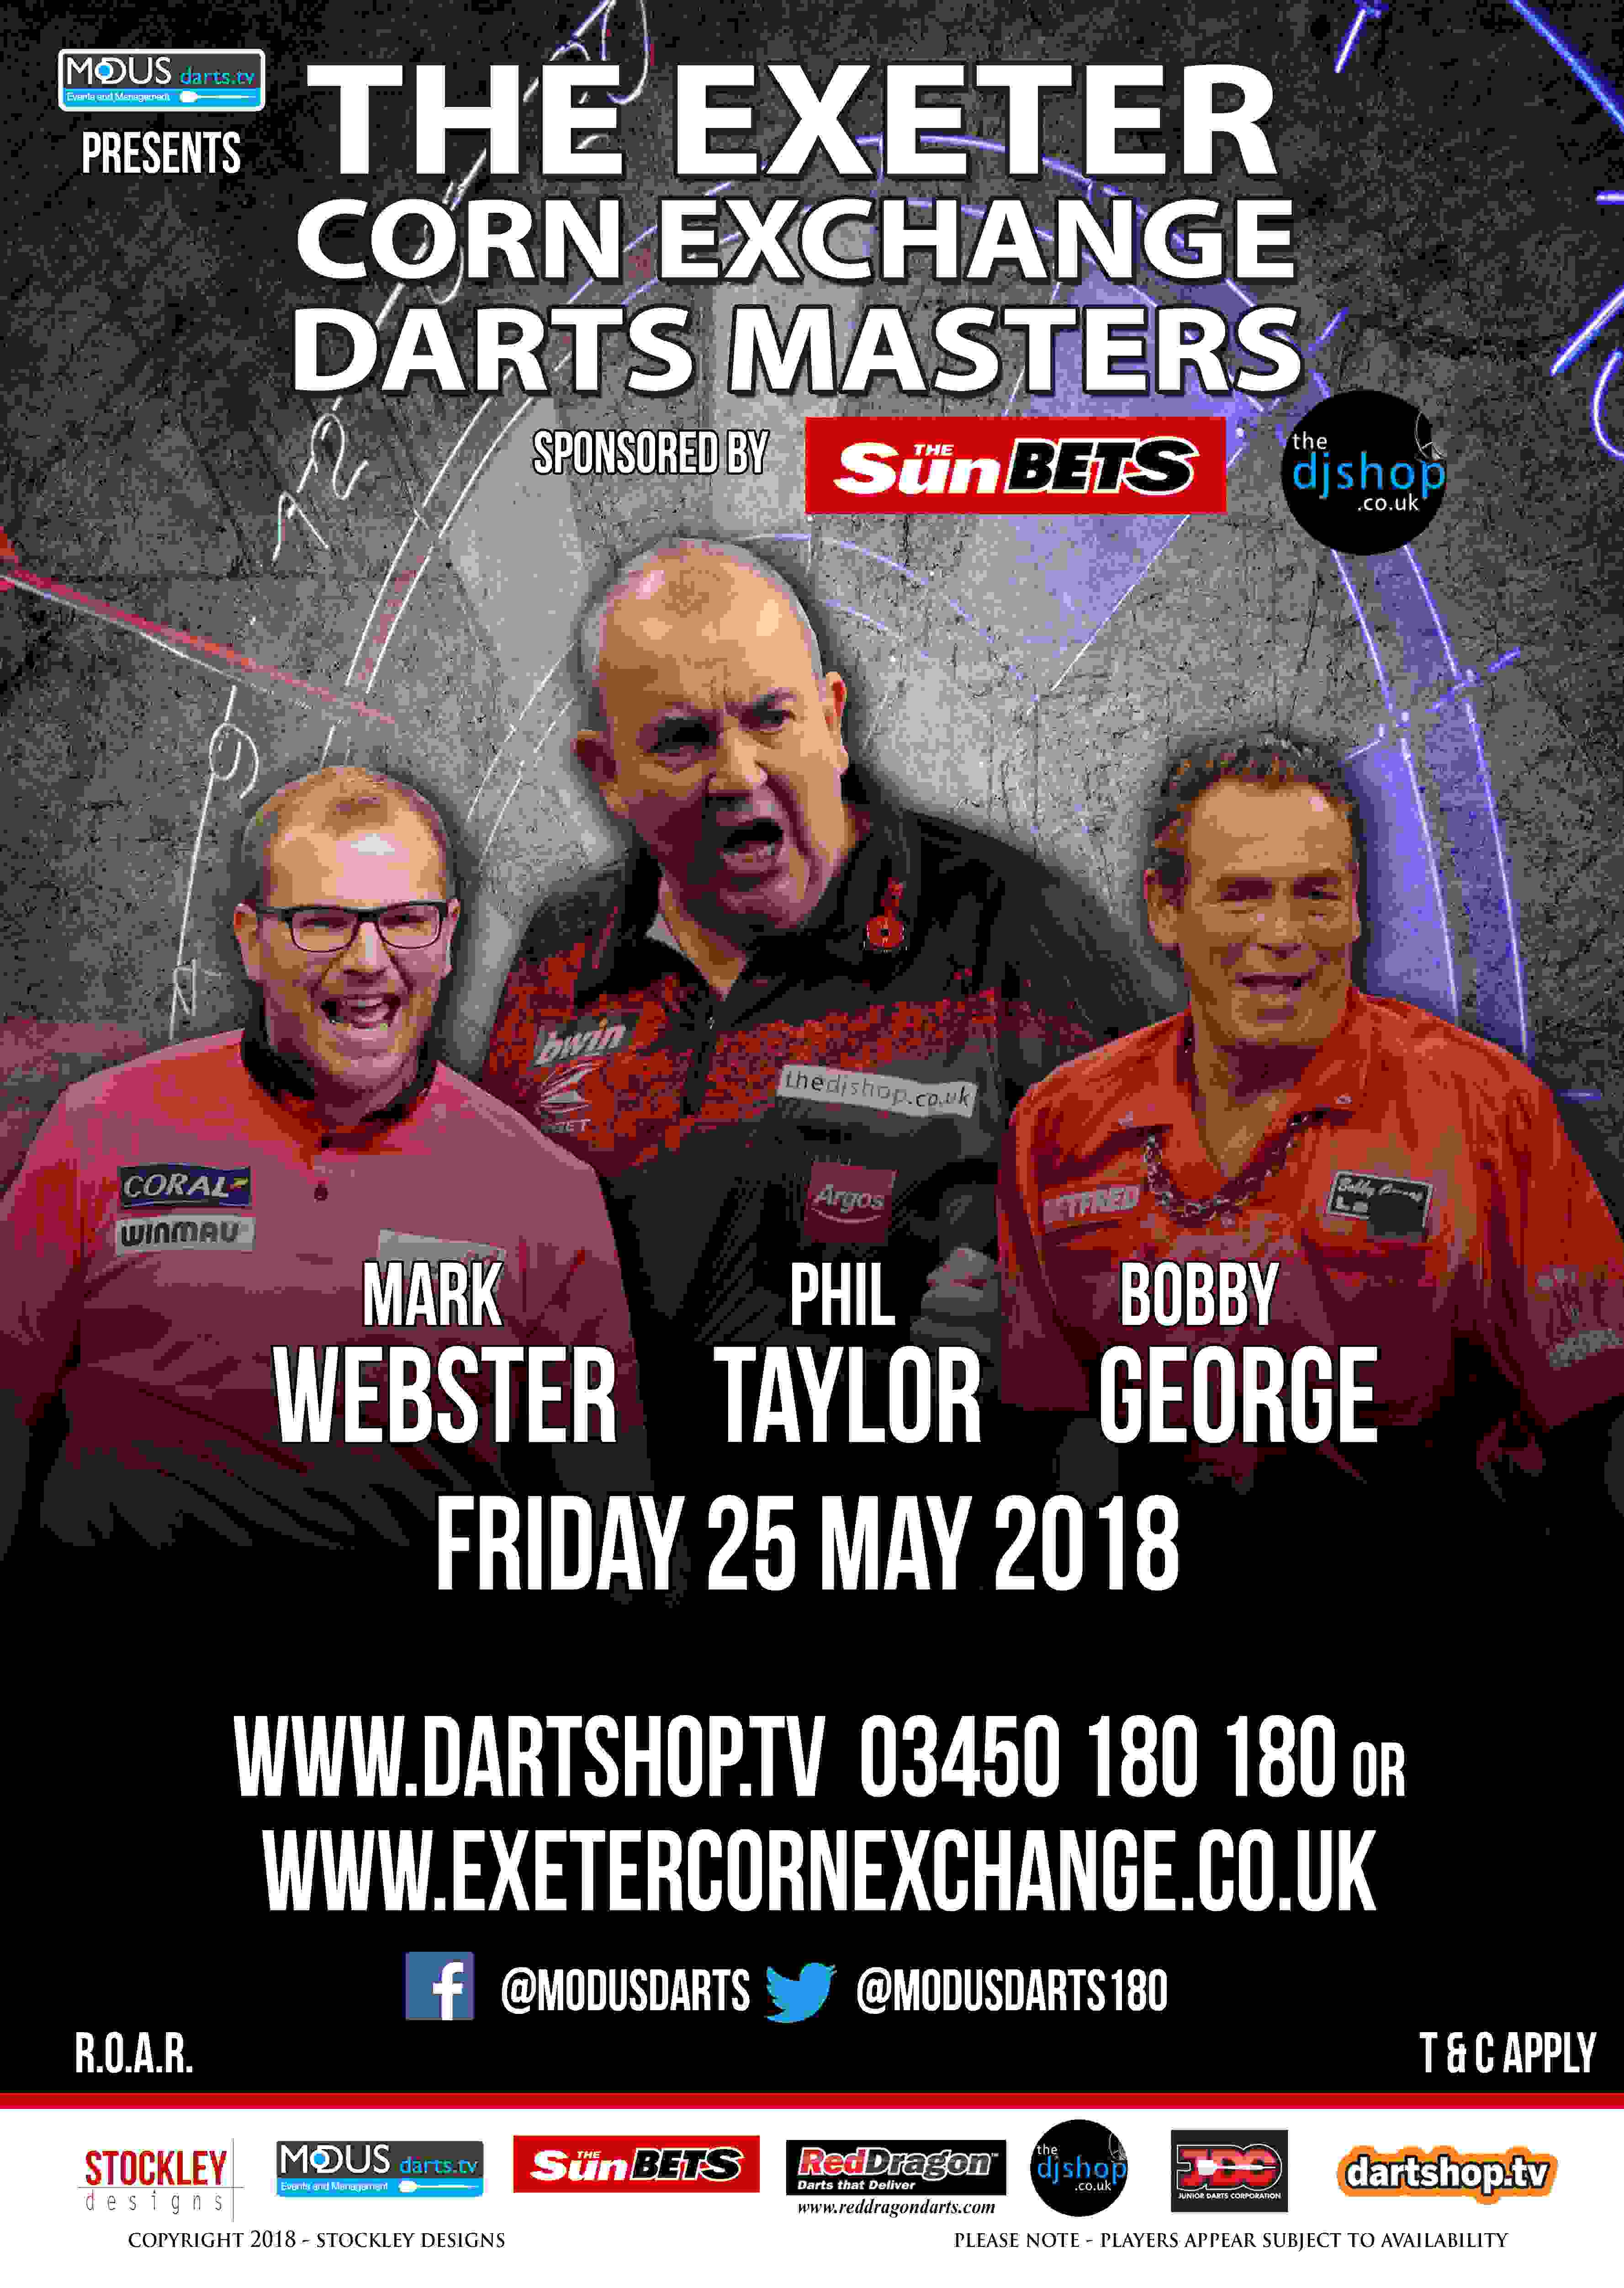 The Exeter Corn Exchange Darts Masters